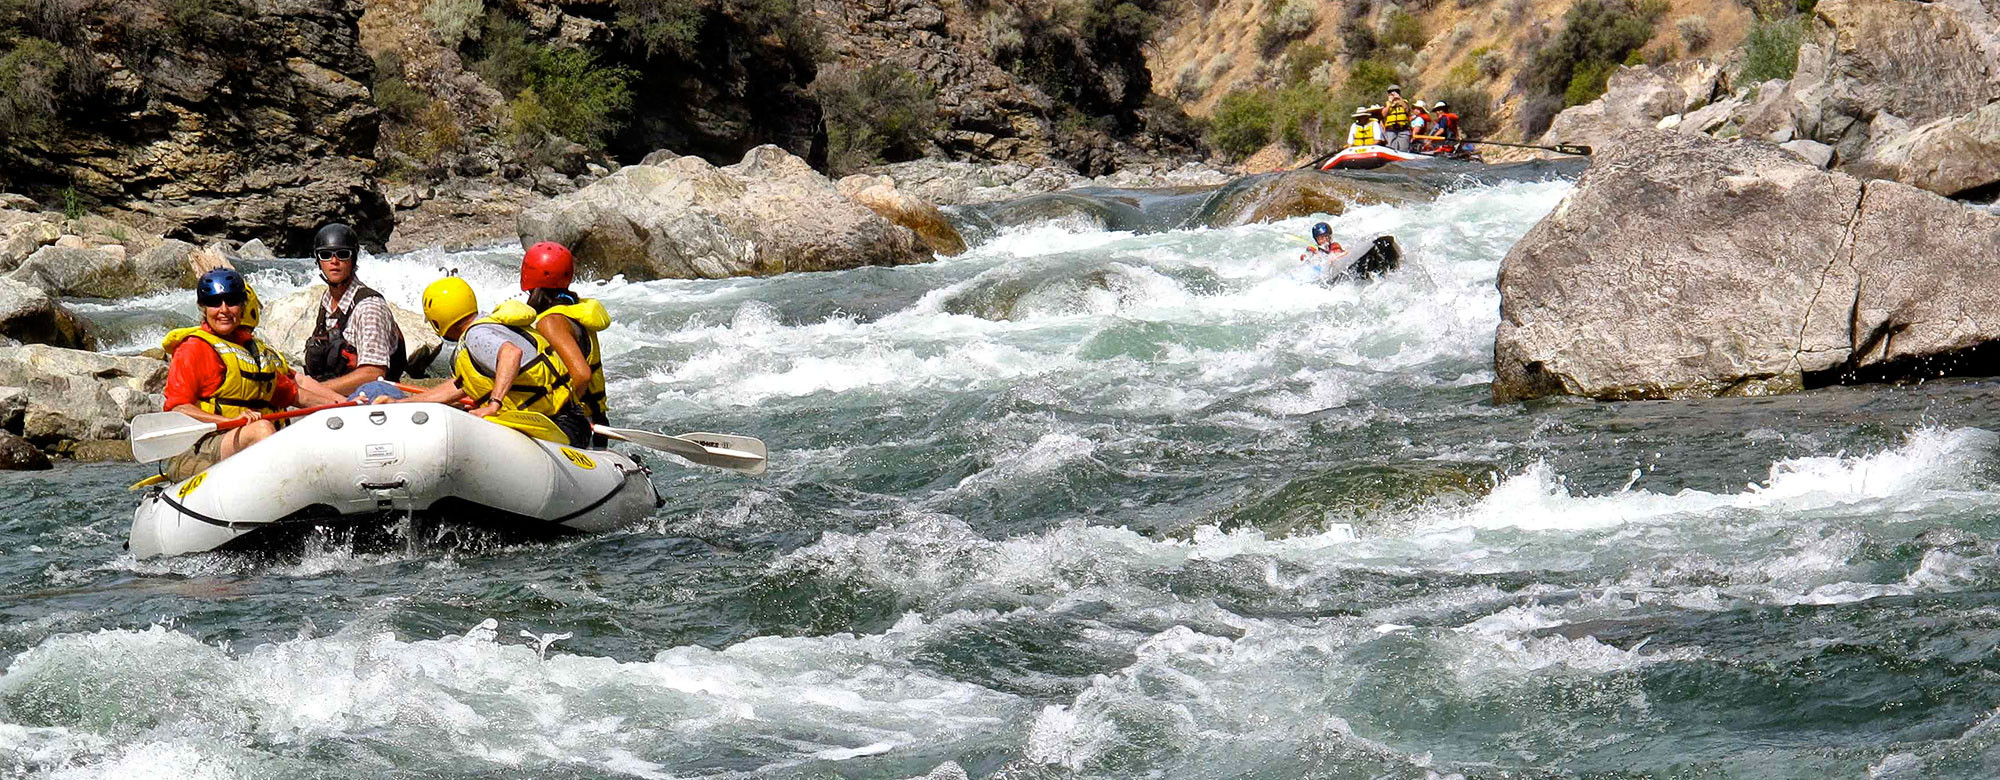 rafting-the-salmon-river